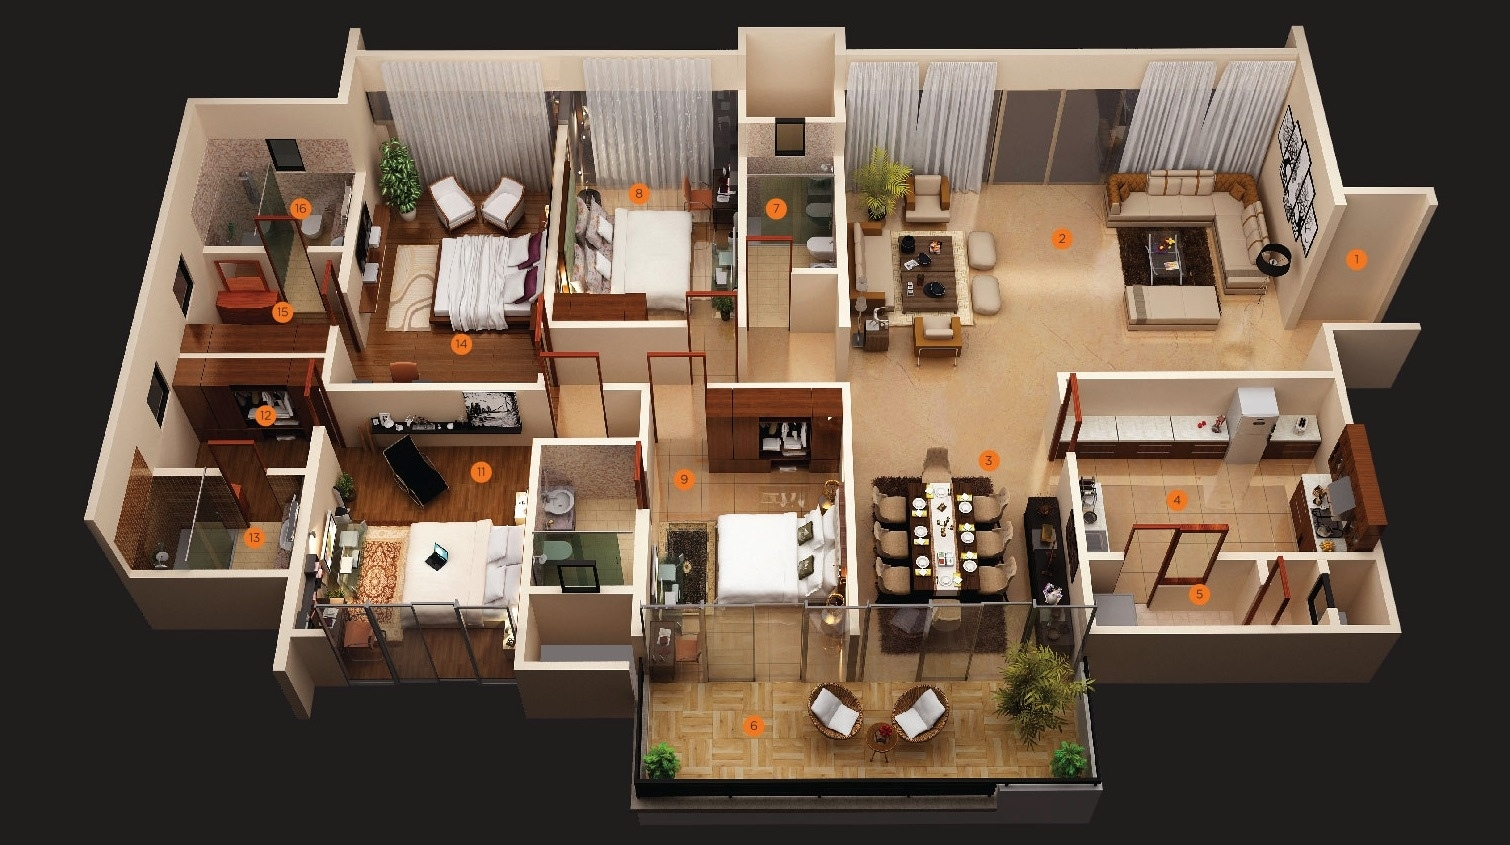 Outstanding Kitchen Living Room Dining Open Floor Plan Bedroom And One One Room With A Sitting Room And Bathroom Plan Picture